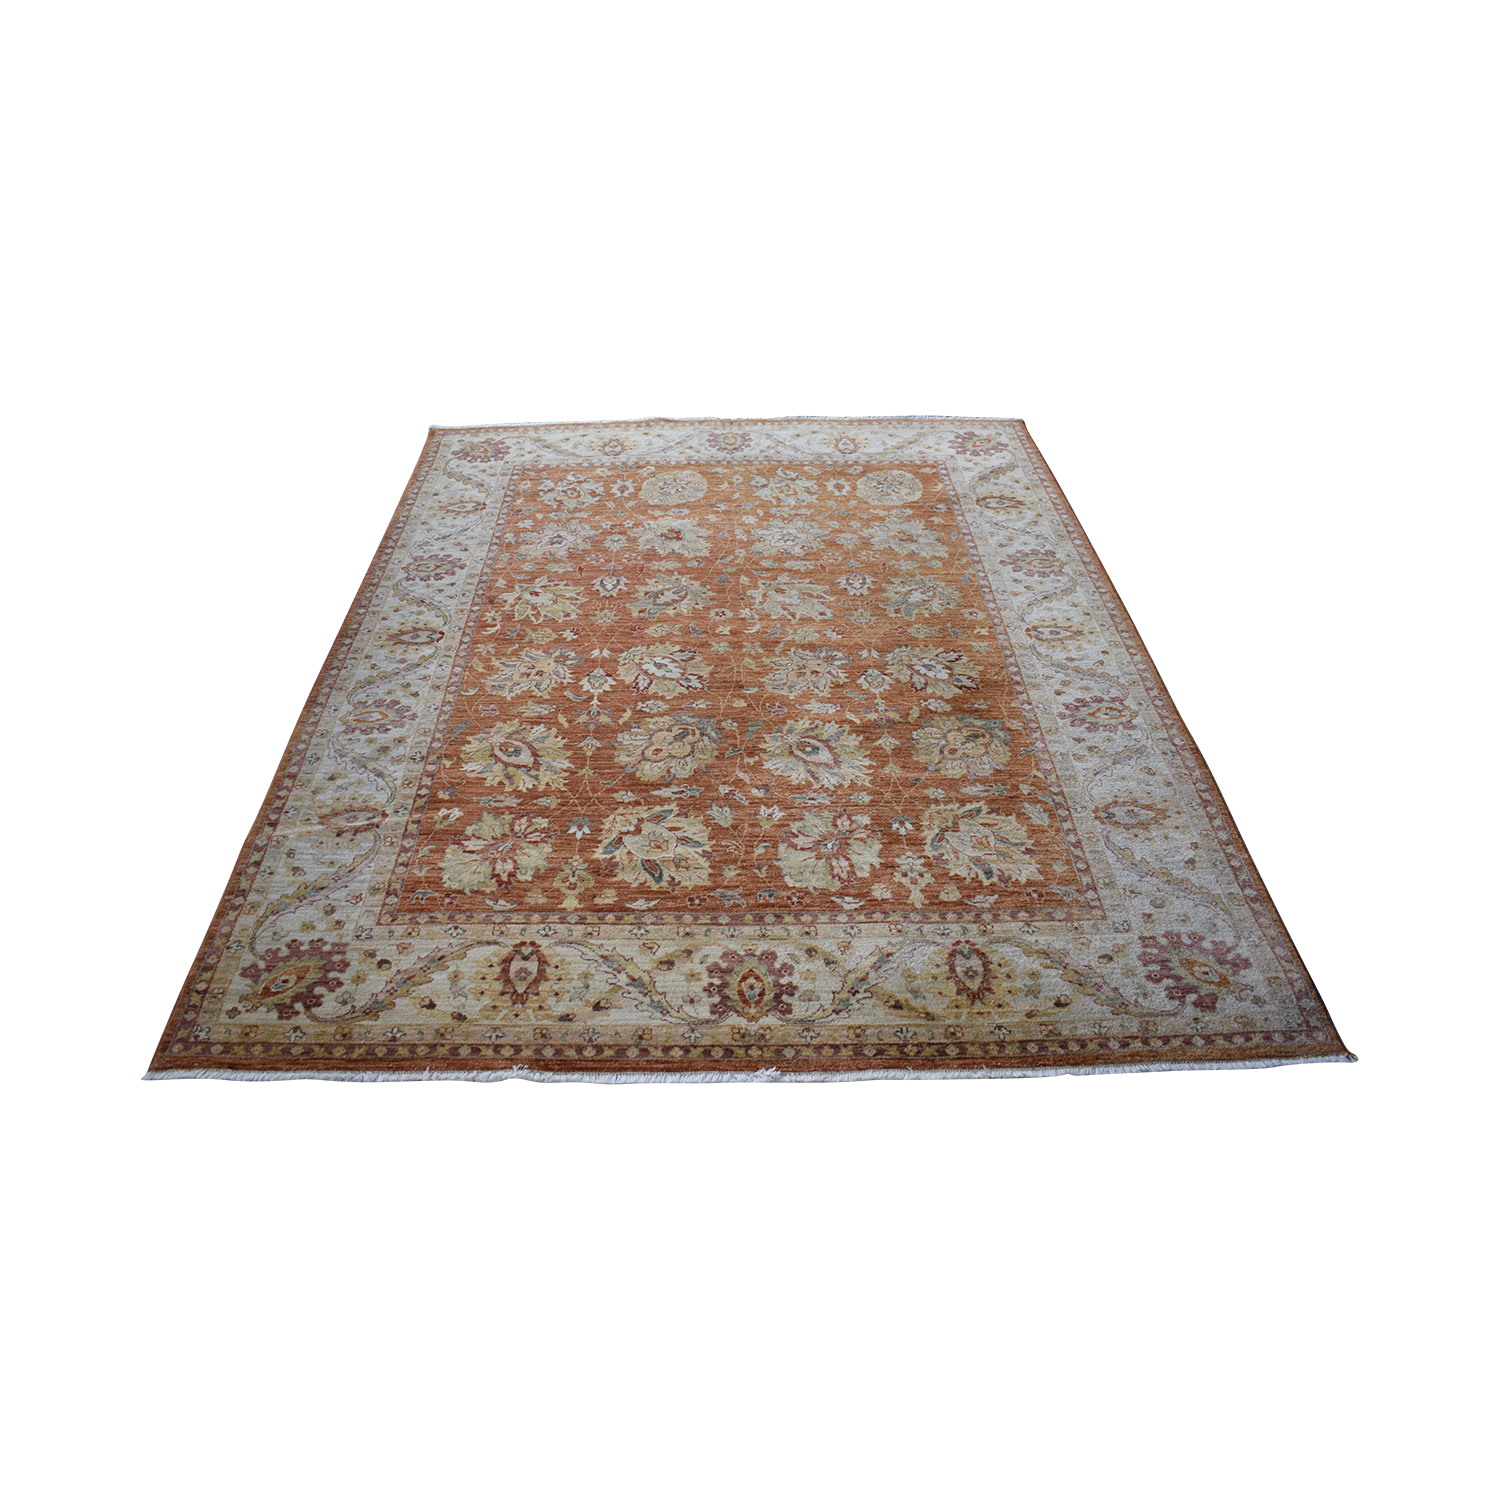 shop Macy's Hand Knotted Wool Area Rug Macy's